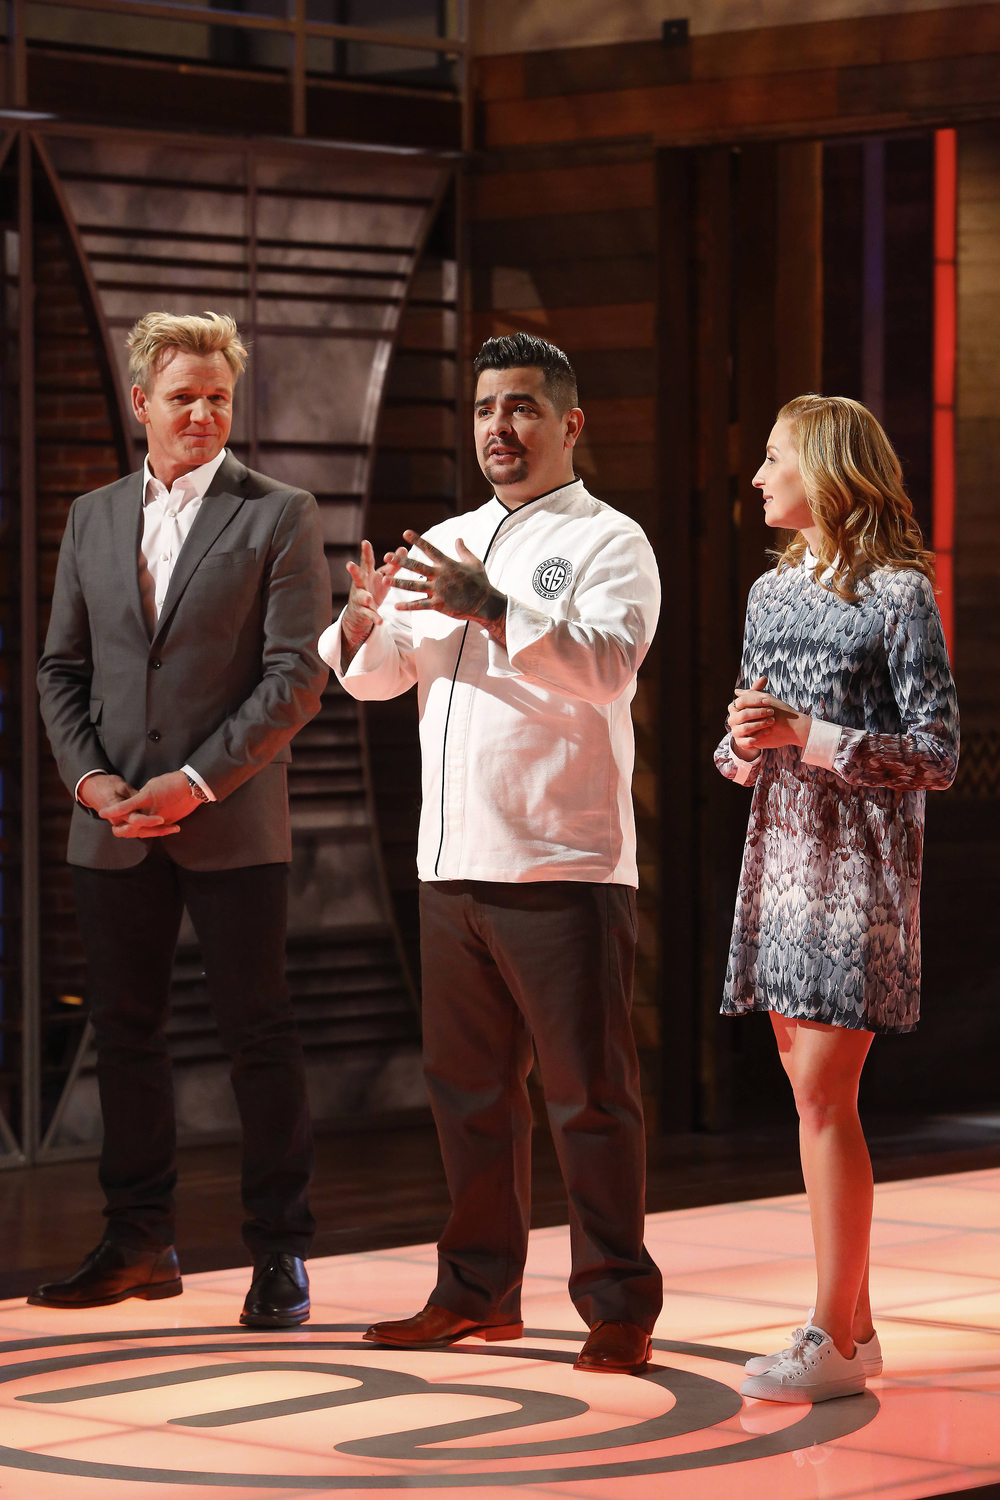 """MASTECHEF: L-R: Gordon Ramsay, Aaron Sanchez and Christina Tosi in the all-new """"Top 17 Compete"""" episode of MASTERCHEF airing Wednesday, June 29 (8:00-9:00 PM ET/PT) on FOX. Cr: Greg Gayne / FOX. © 2016 FOX Broadcasting Co."""